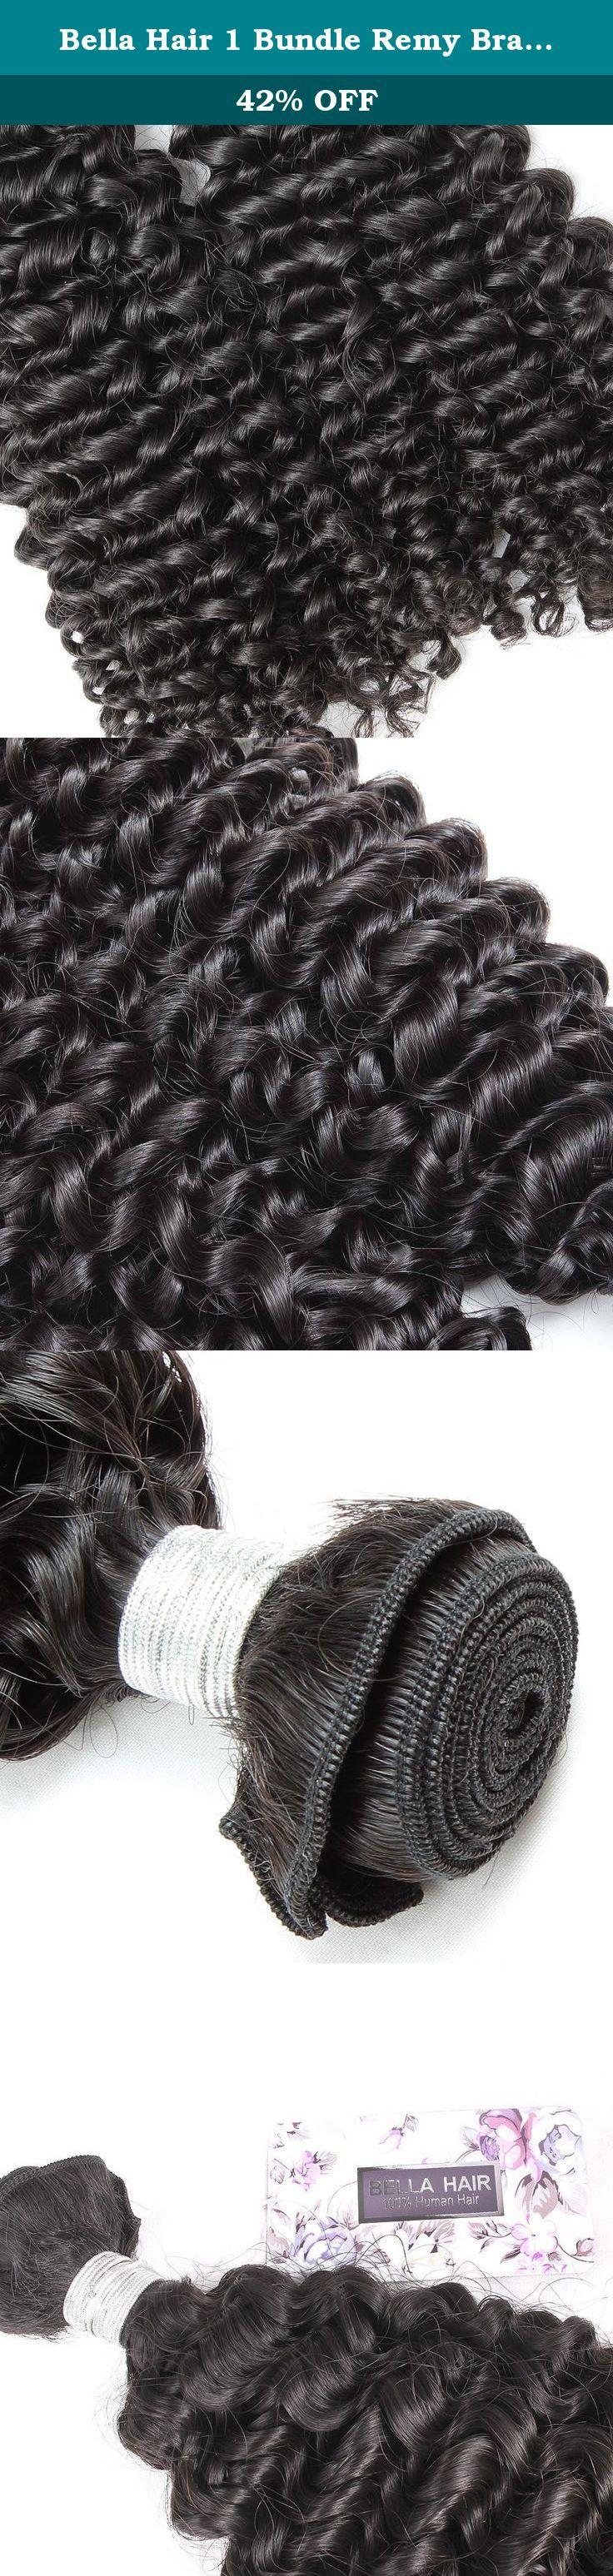 Bella Hair 1 Bundle Remy Brazilian Virgin Hair Curly Wave Weave Human Hair Extensions Natural Black Color (16inch). Brazilian Curly Wave Human Hair 1) Material: 100% Brazilian virgin human hair , unprocessed natural hair with no chemical condition, No Acid! No Dye! 100% Real Human Hair. 2) Quality: No shedding, No Tangle, Long Lifetime, High Quality Hair 3) Length: 16inch, 100% Ture To The Length 4) Color: Natural Black Color (Can Be Dyed) 5) Hair Type :Hair Extensions 6) Weight: 95-100g…